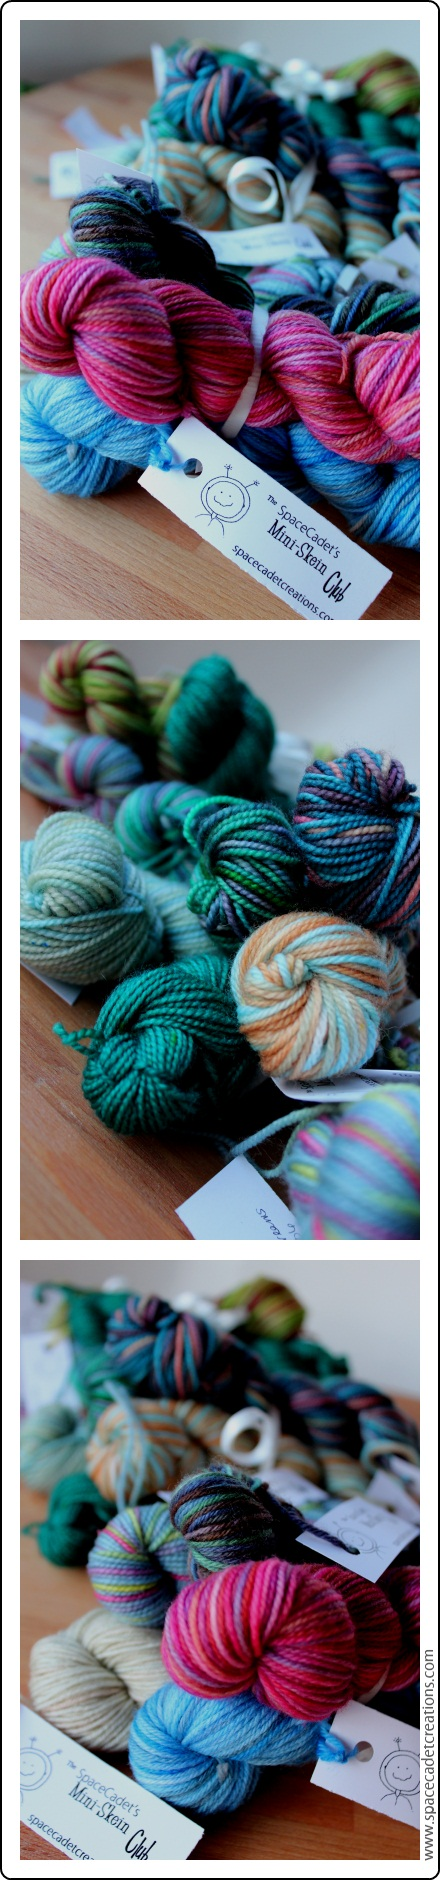 Seriously adorable bundles of yarn from the SpaceCadet's Mini-Skein Club